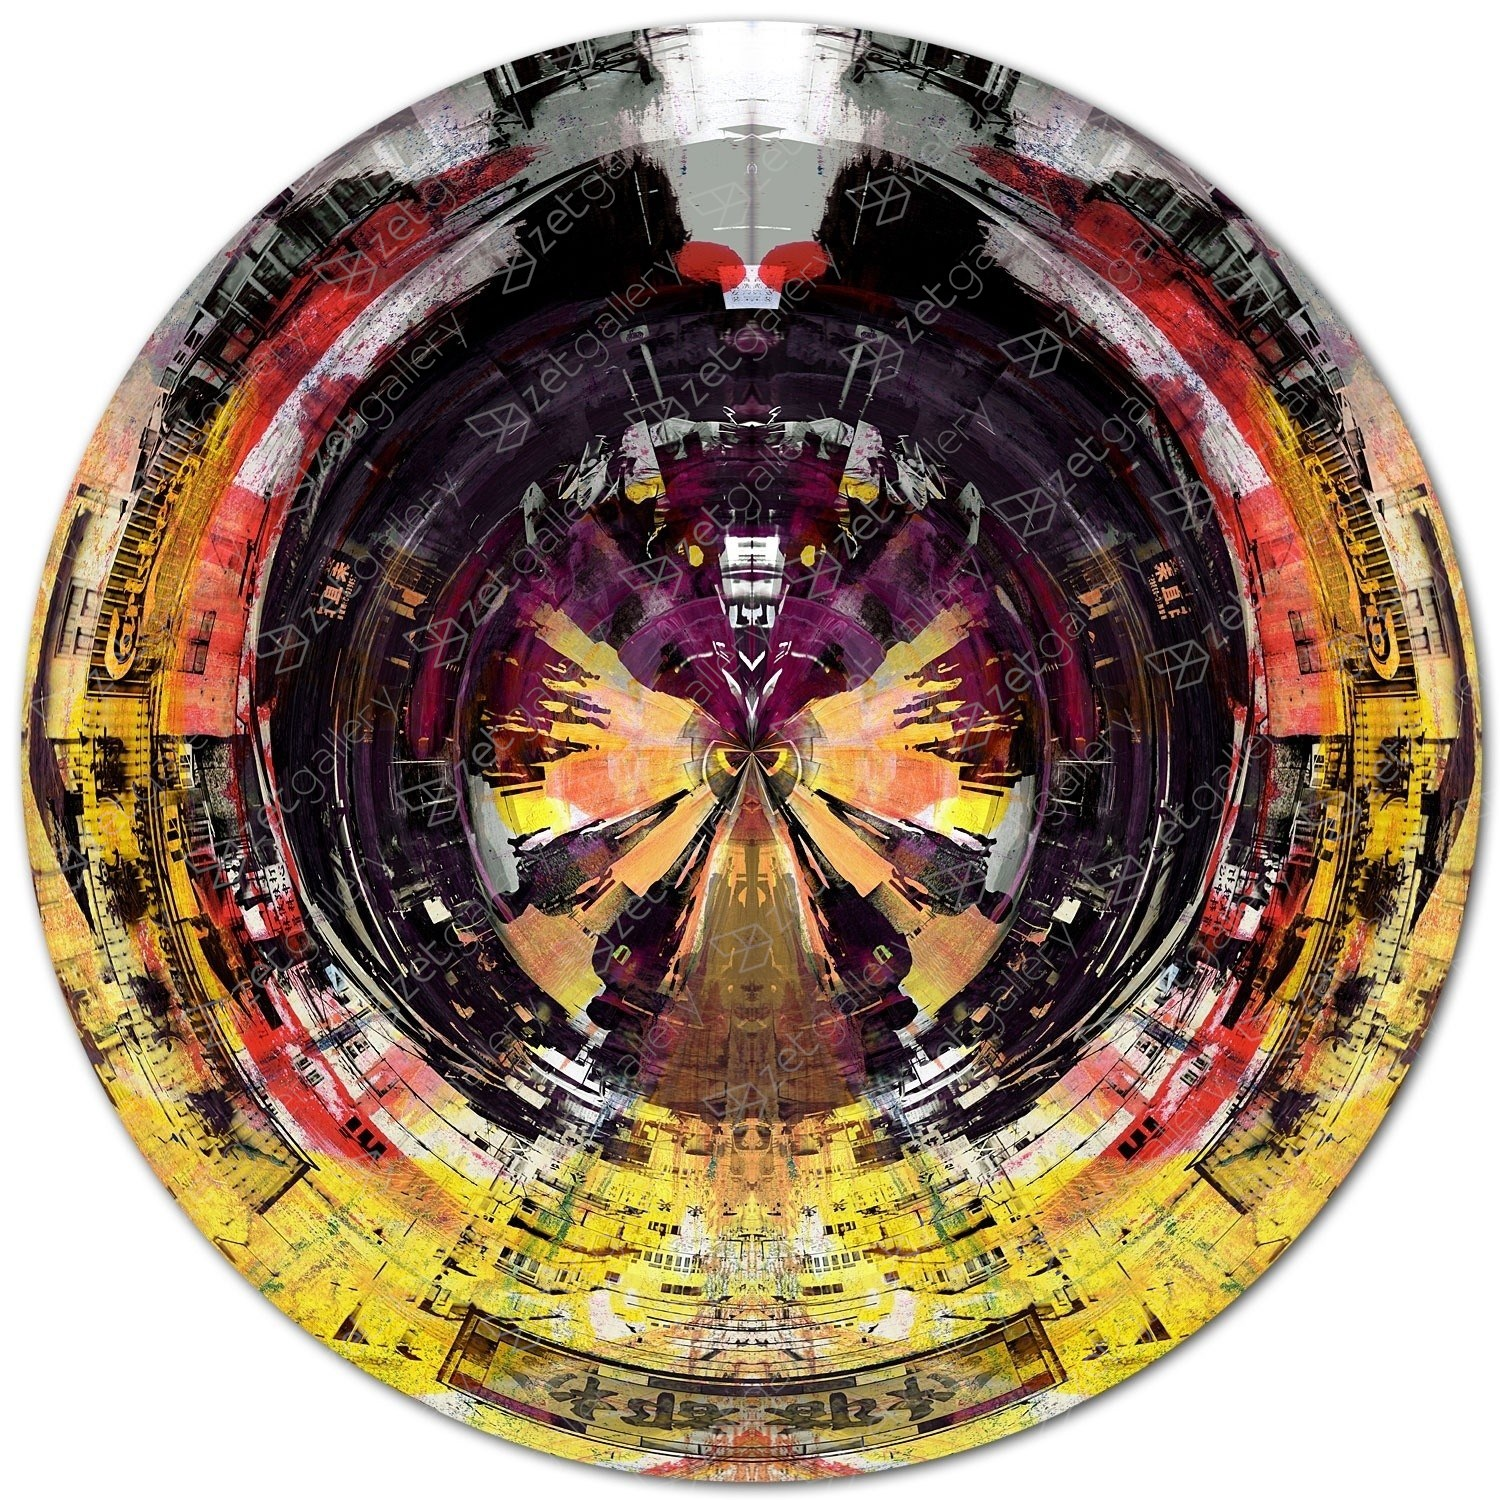 CIRCULAR 10, original Abstract Digital Photography by Sven Pfrommer